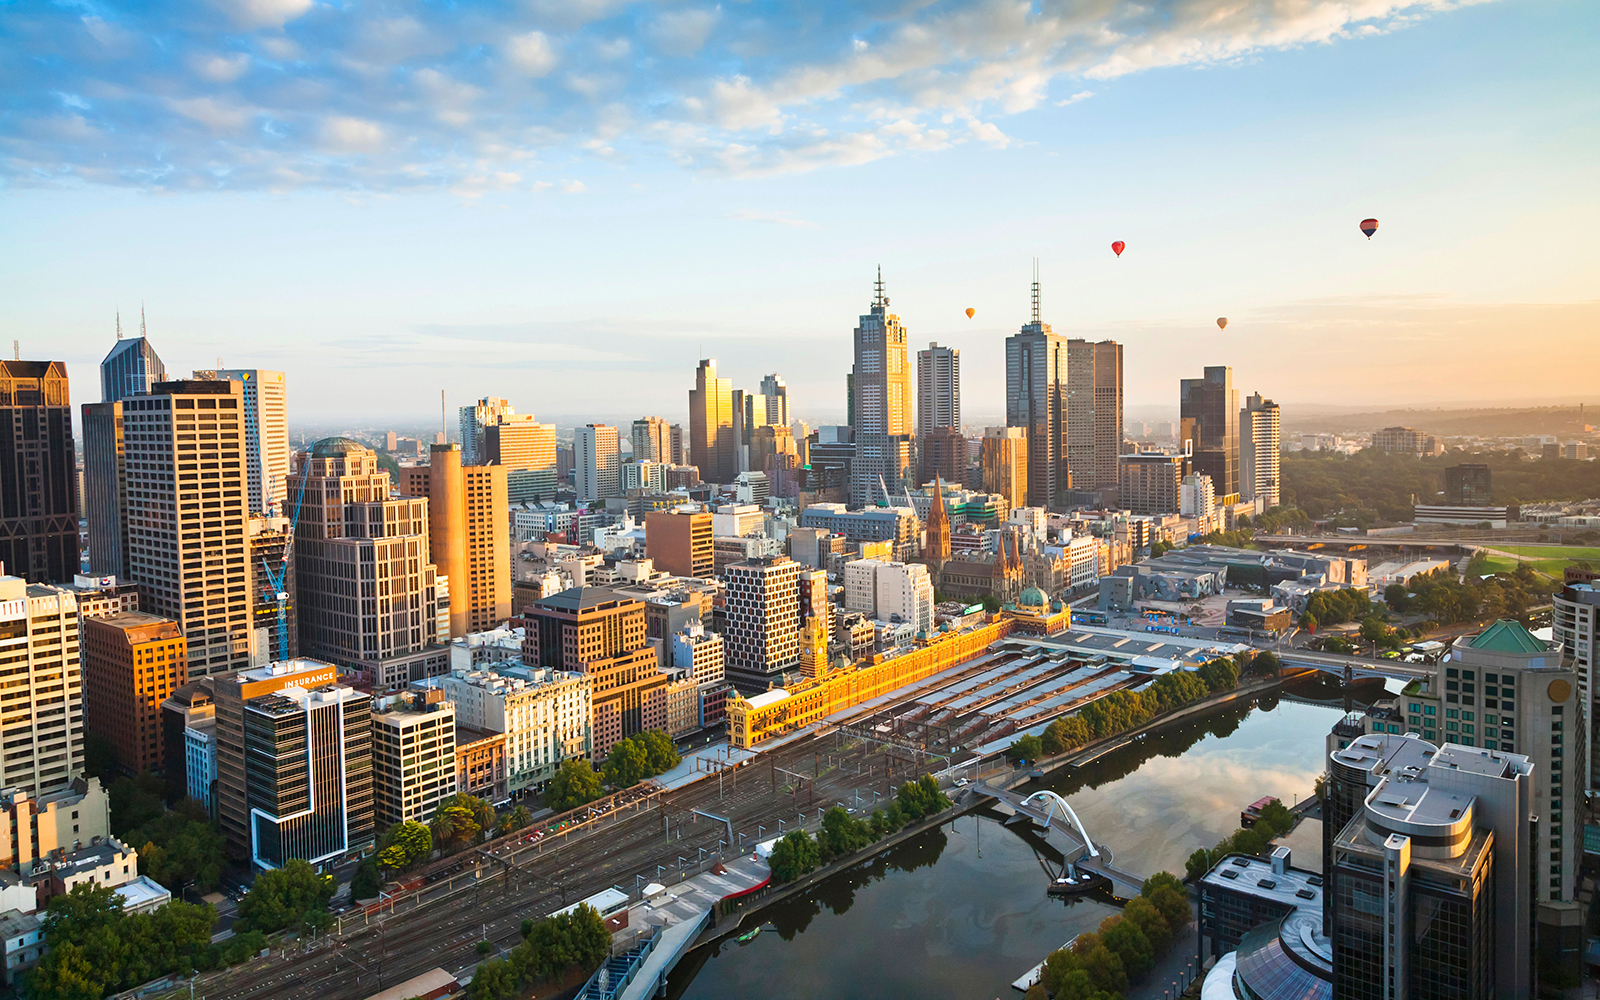 Best Hot-Air Balloon Rides: Balloon Over Melbourne